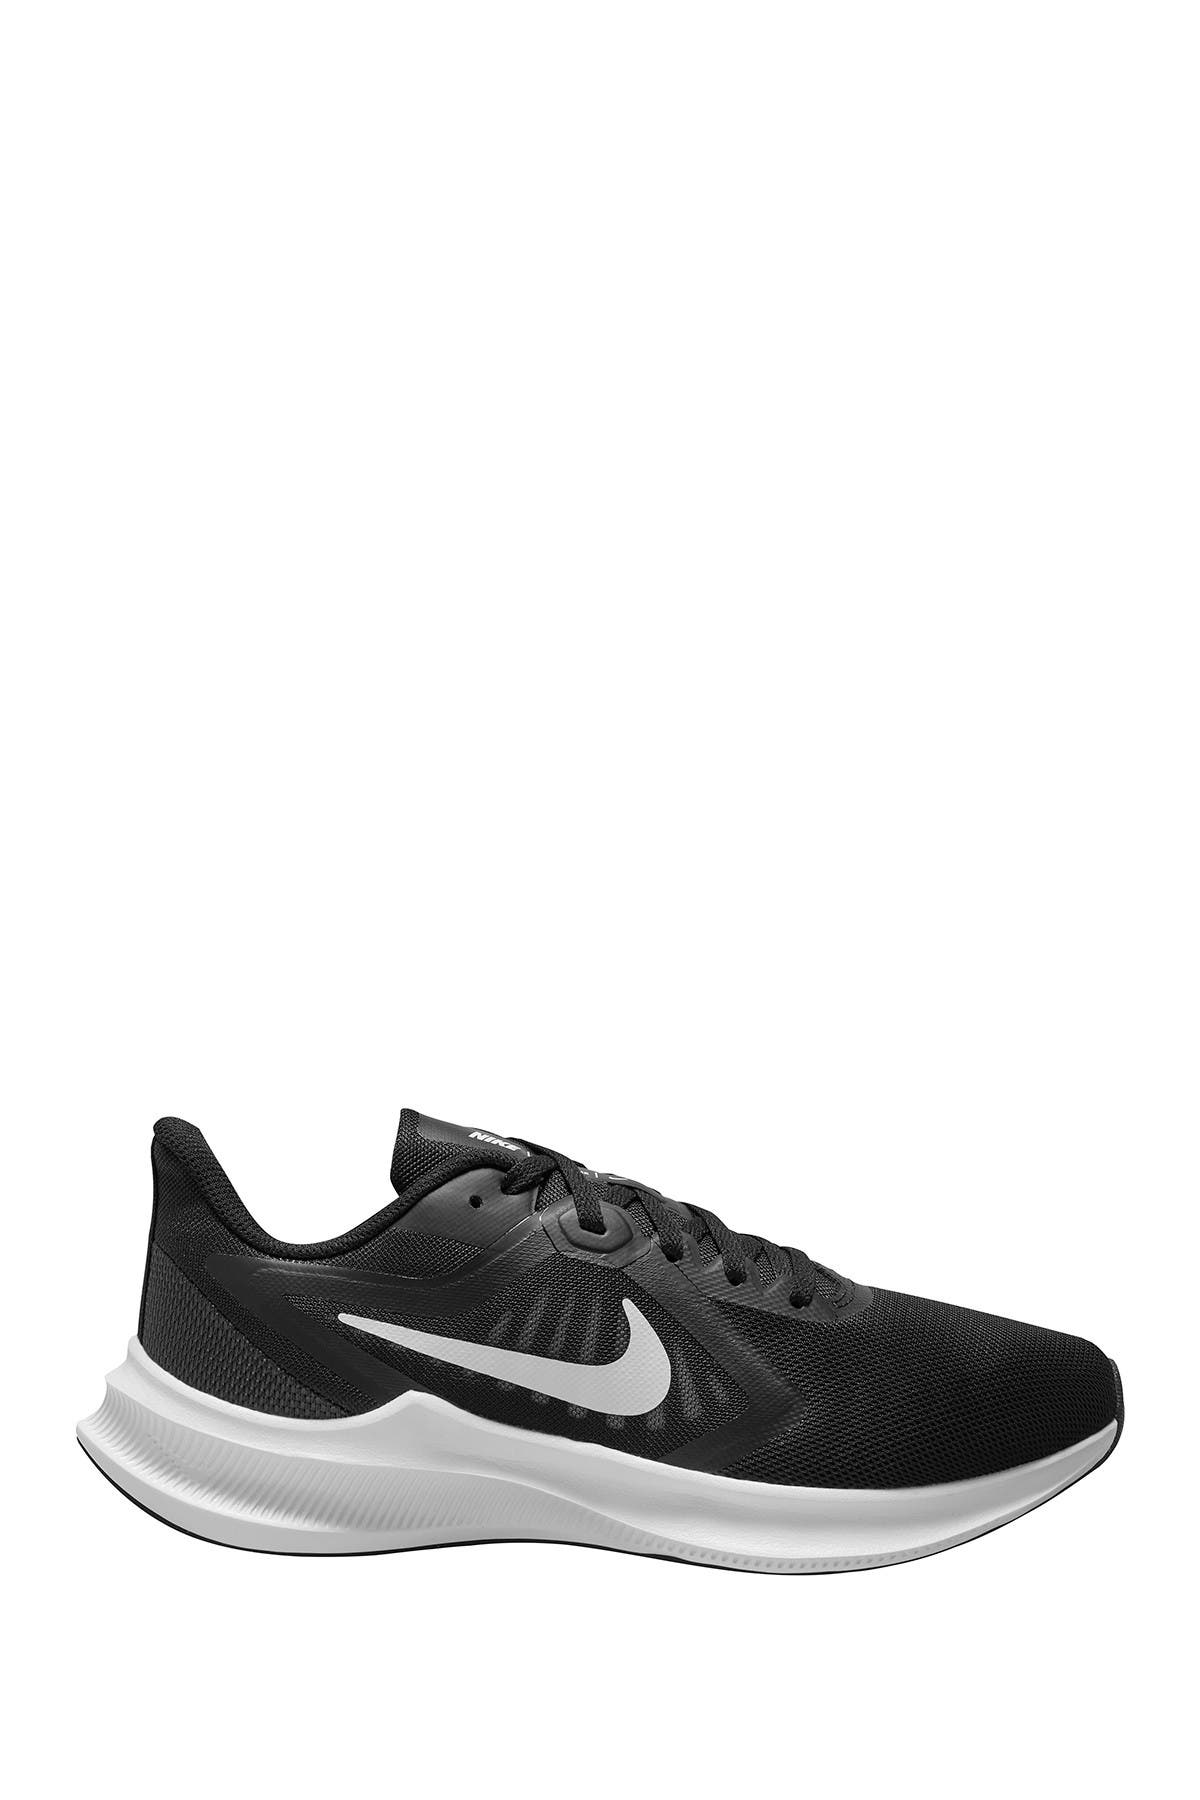 Image of Nike Downshifter 10 Sneaker